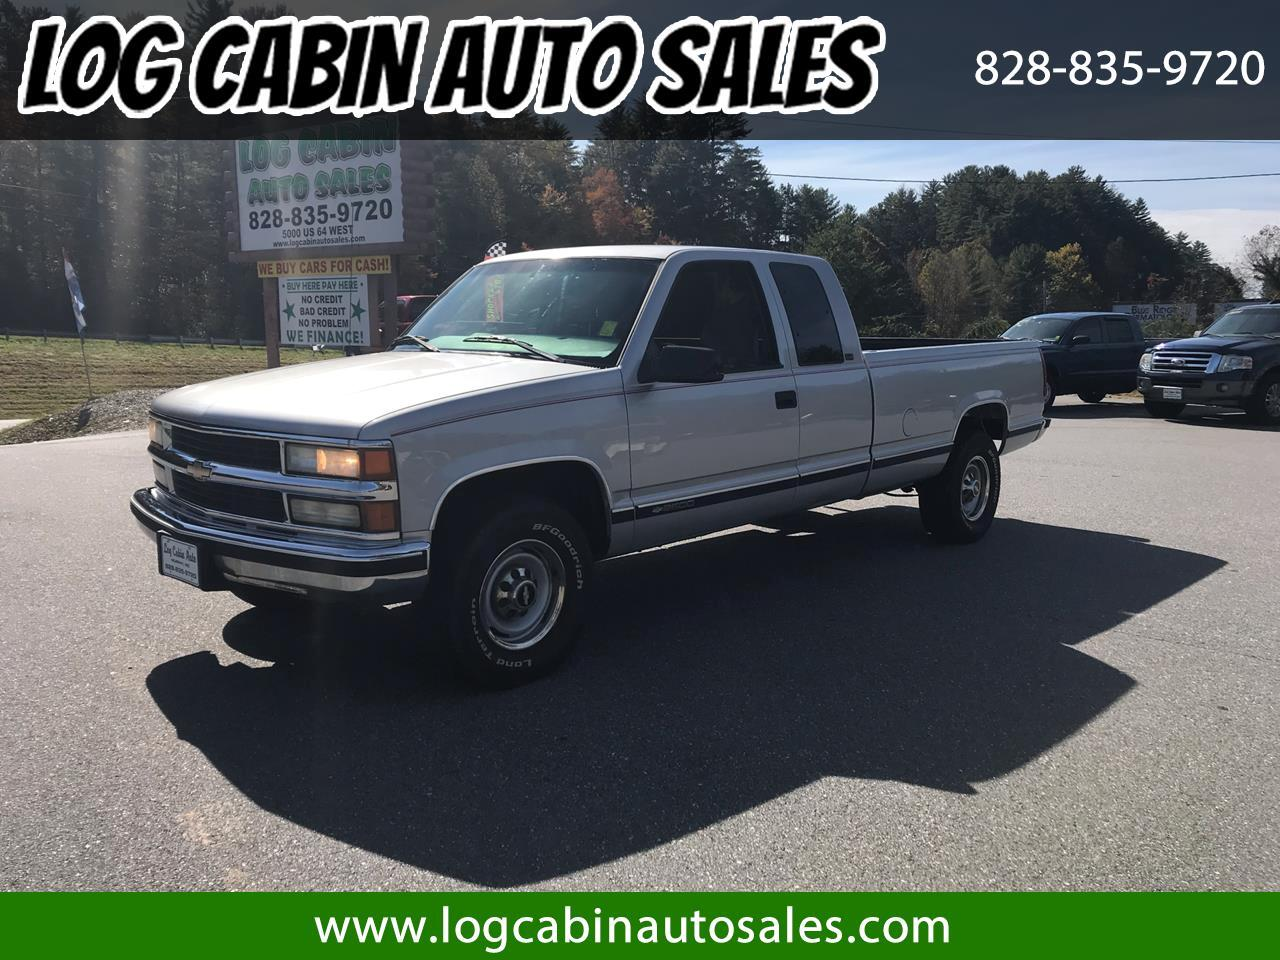 1997 Chevrolet C/K 2500 Ext. Cab 8-ft. Bed 2WD